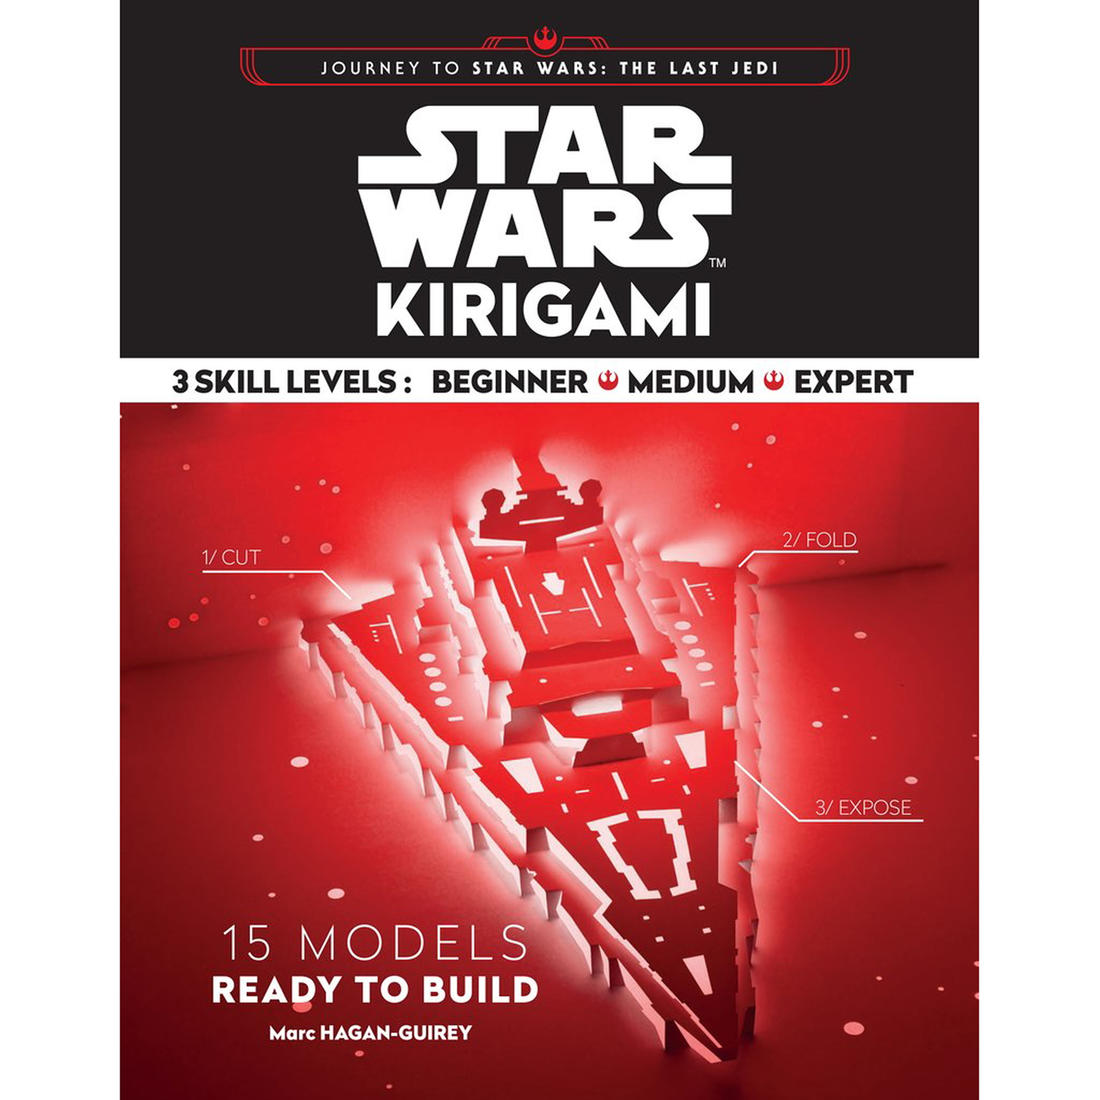 Star Wars Kirigami Book | getDigital